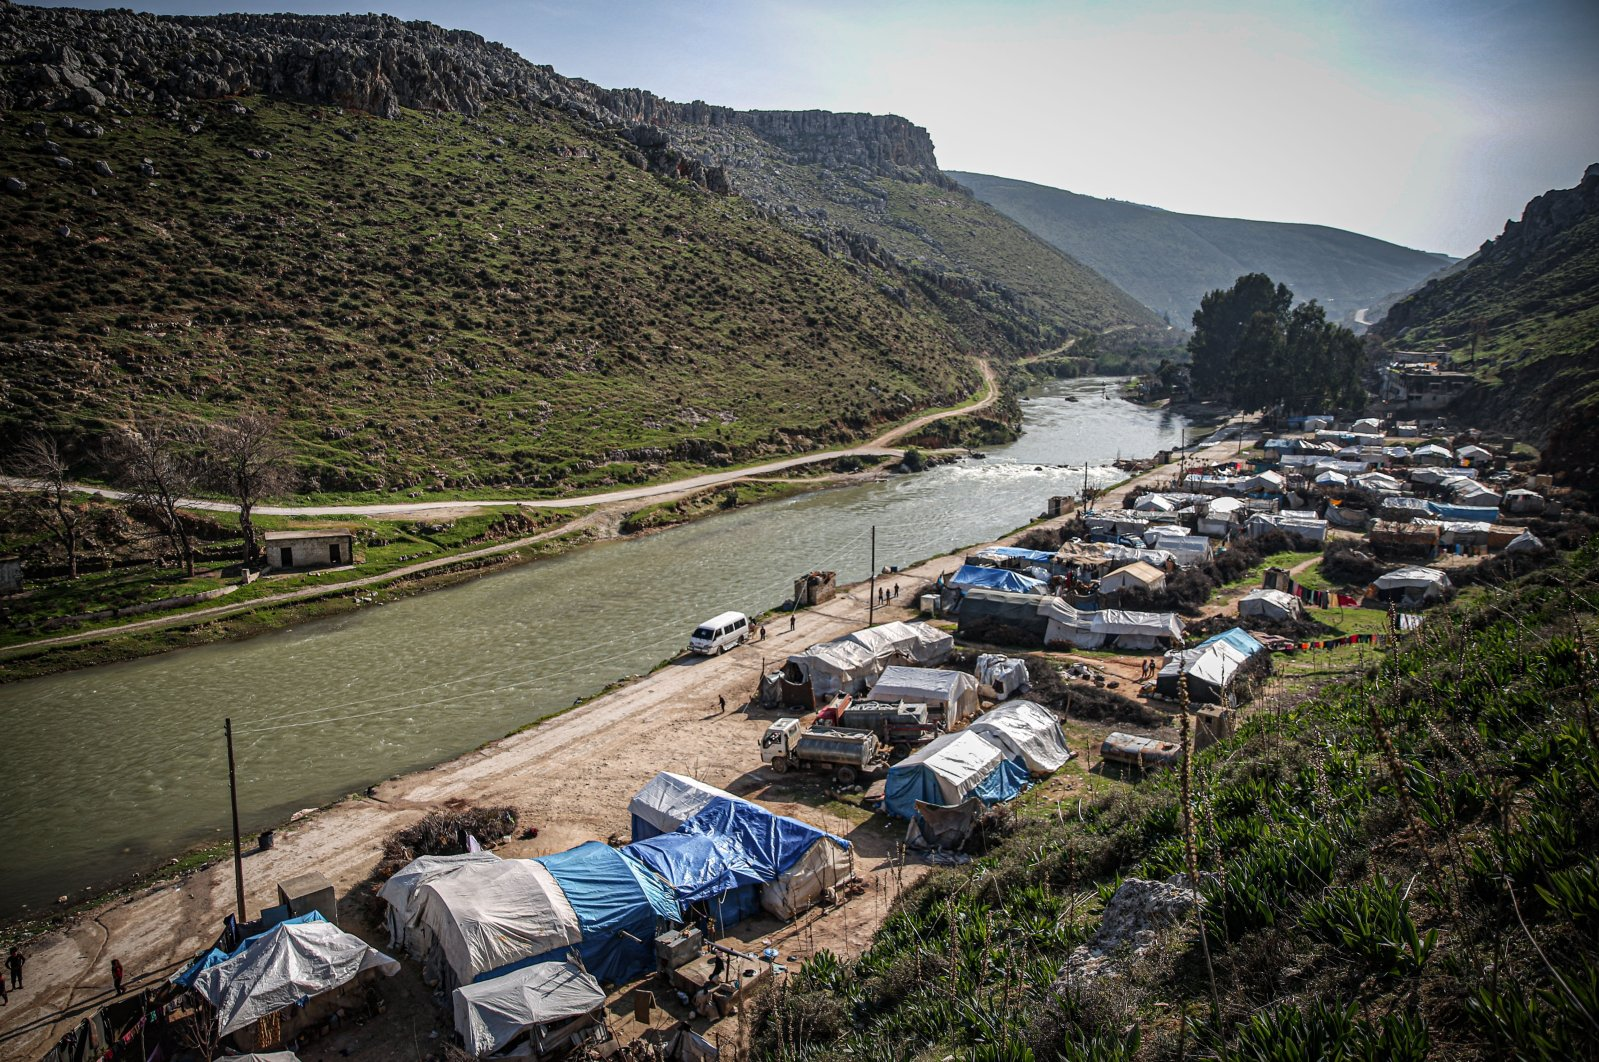 The Sheik Isa tent camp sits on the shore of the Orontes (Asi) River, Jan. 29, 2021. (AA)